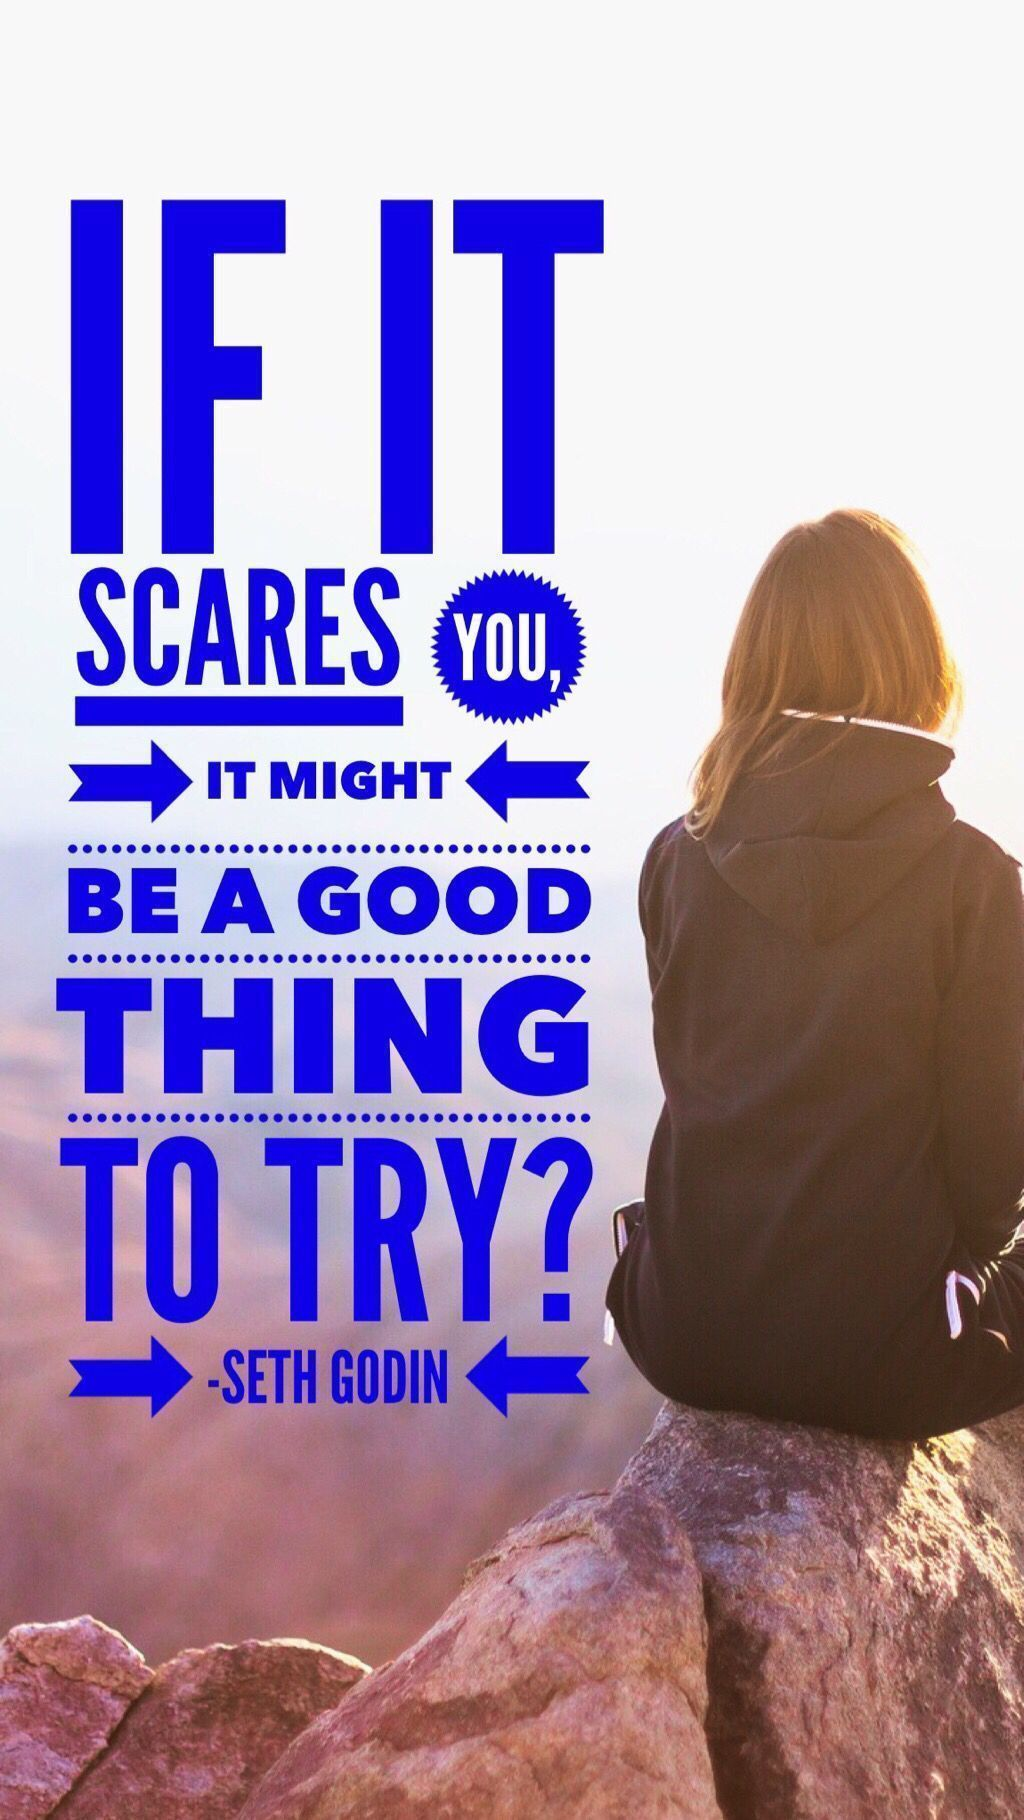 If it scares you it might be a good thing to try #quotesabouttakingchances Seth Godin Quote about taking chances and risks. #quotes #quotestoliveby #quotestoSOARby #quotestagram #quotesoftheday ##fourFORsoaring #quotesdaily #quoteoftheday #quotesaboutlife #quotestoremember #quotestagram #quotestoinspire #motivationalquotes #quoteslover #inspirational #growth #change #quotesabouttakingchances If it scares you it might be a good thing to try #quotesabouttakingchances Seth Godin Quote about taking #quotesabouttakingchances